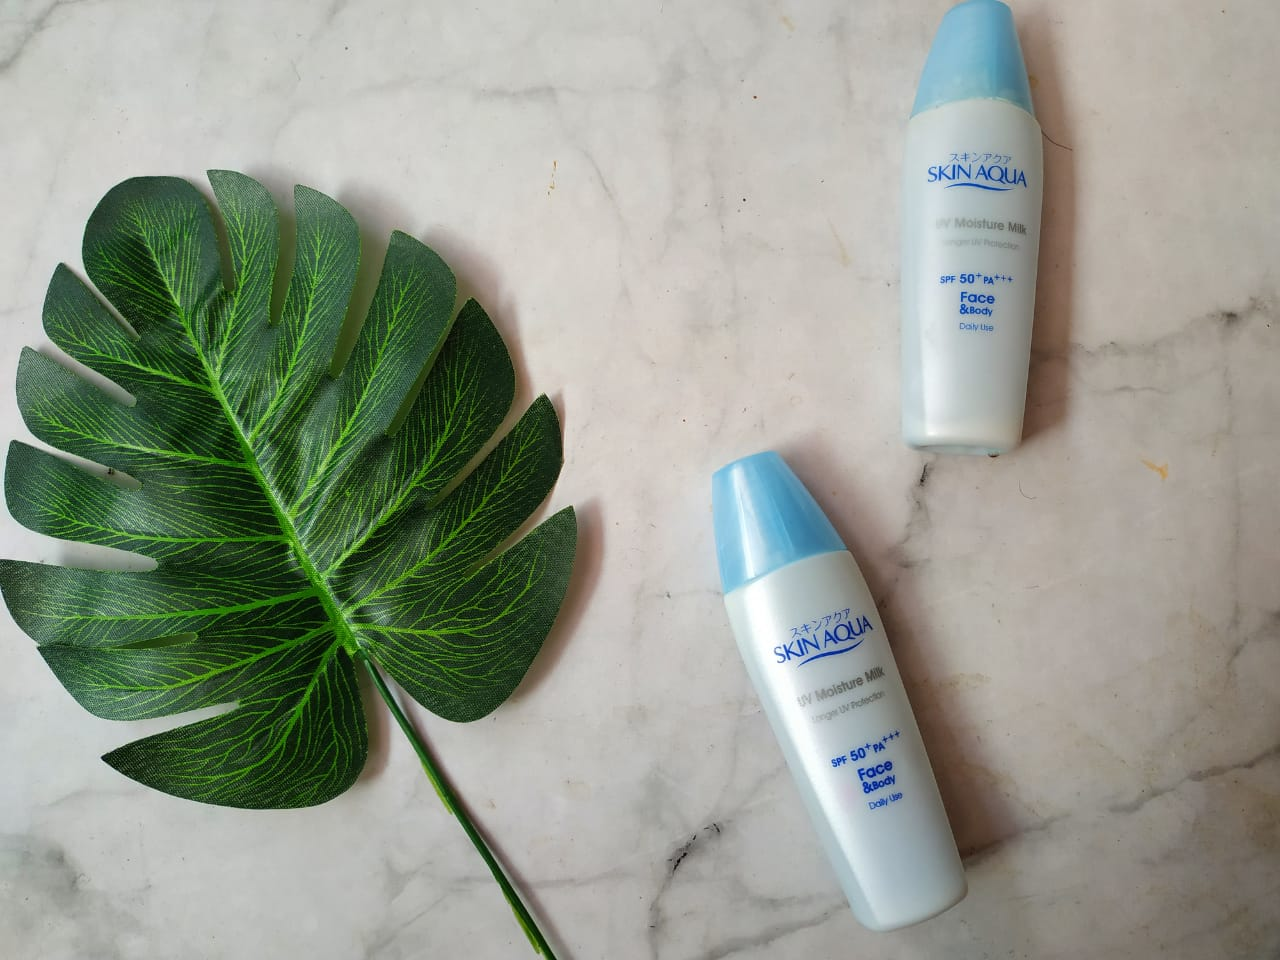 Review Skin Aqua Uv Moisture Milk Spf 50